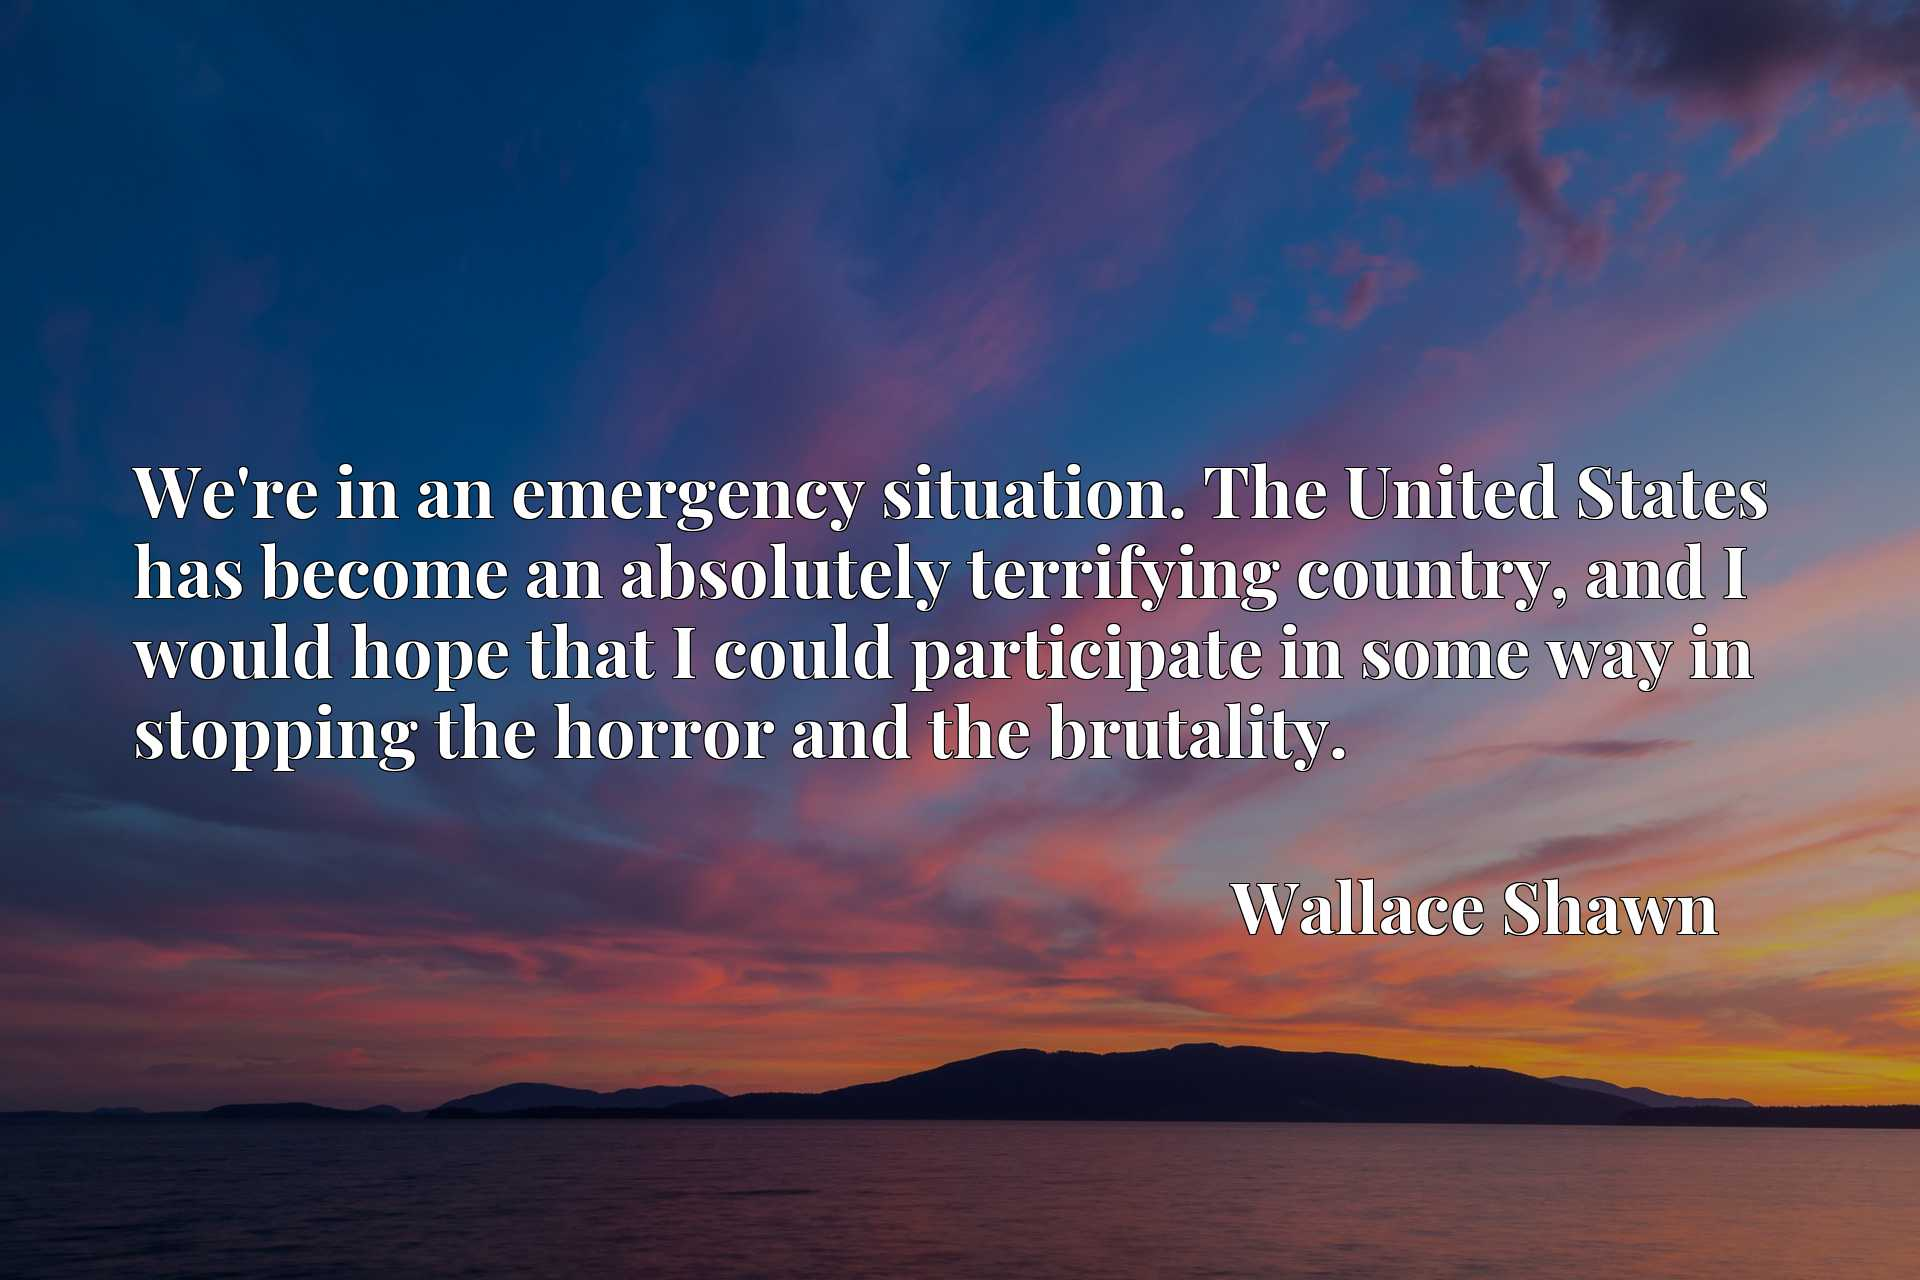 We're in an emergency situation. The United States has become an absolutely terrifying country, and I would hope that I could participate in some way in stopping the horror and the brutality.